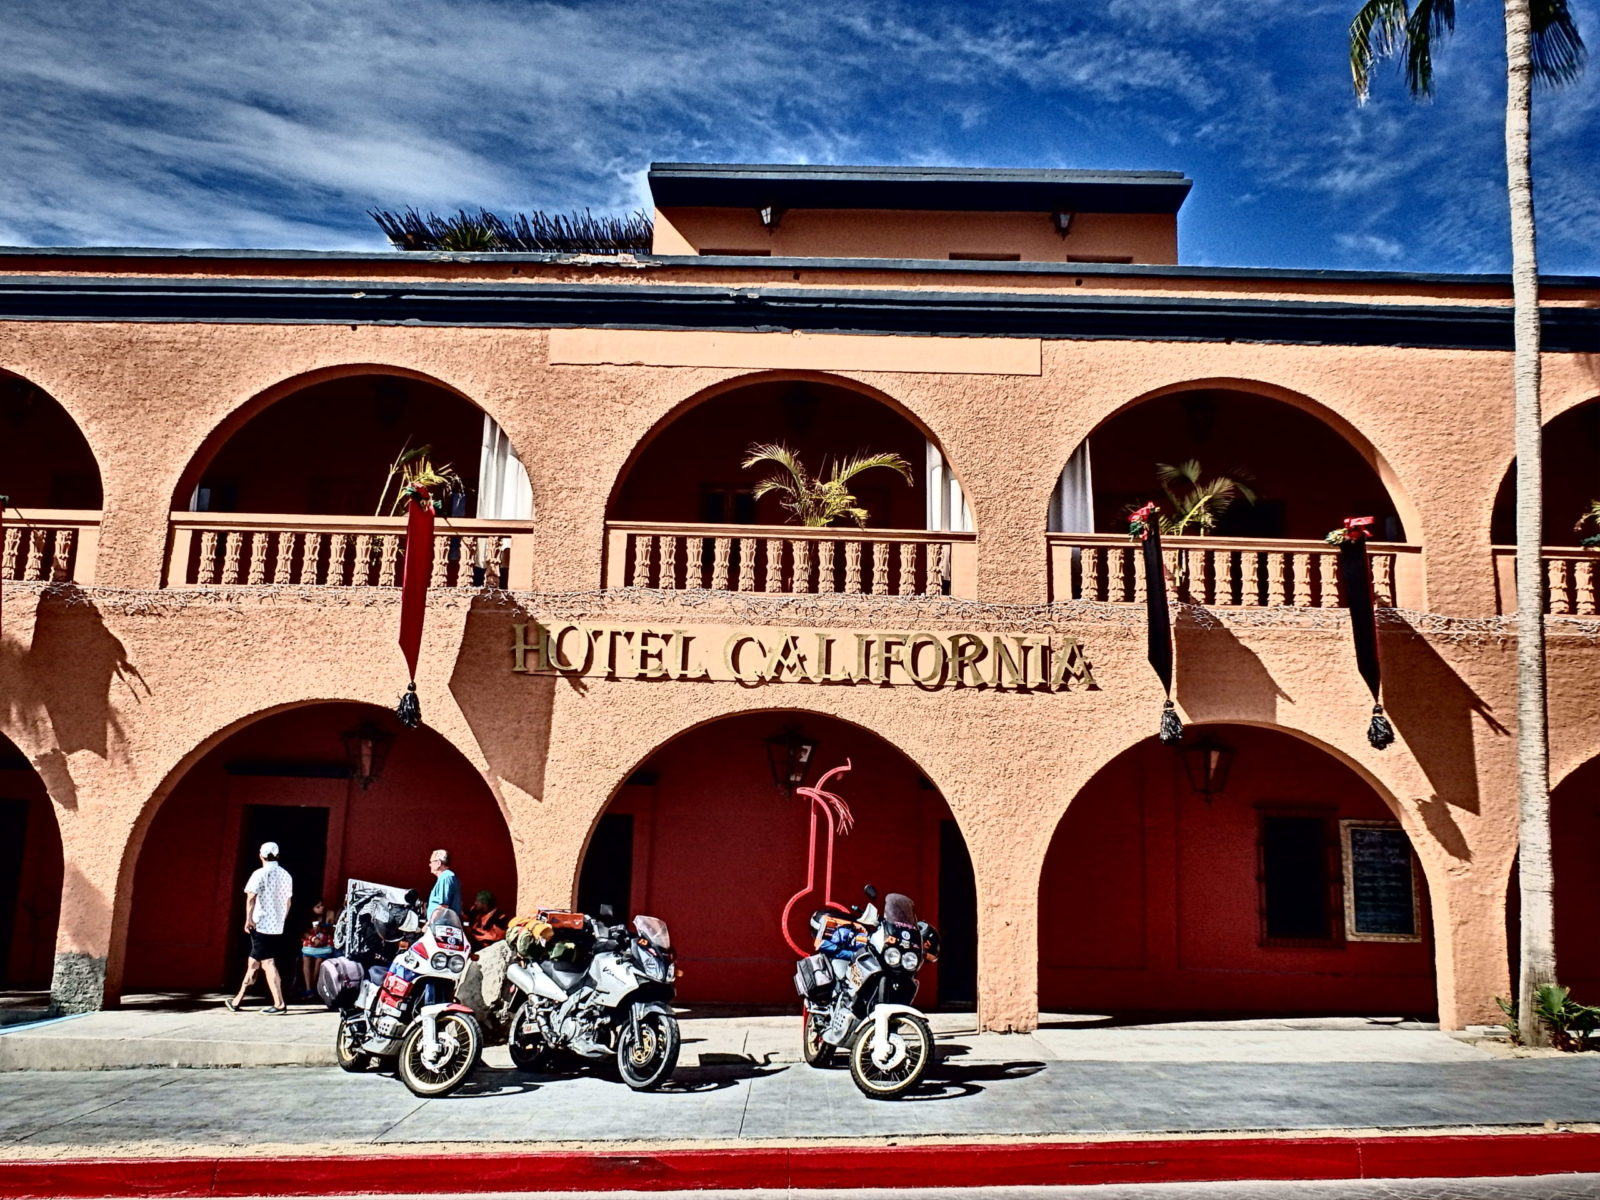 Legendary Hotel California draws all the tourists, including our guests at Casa Oasis Todos Santos Vacation Rental